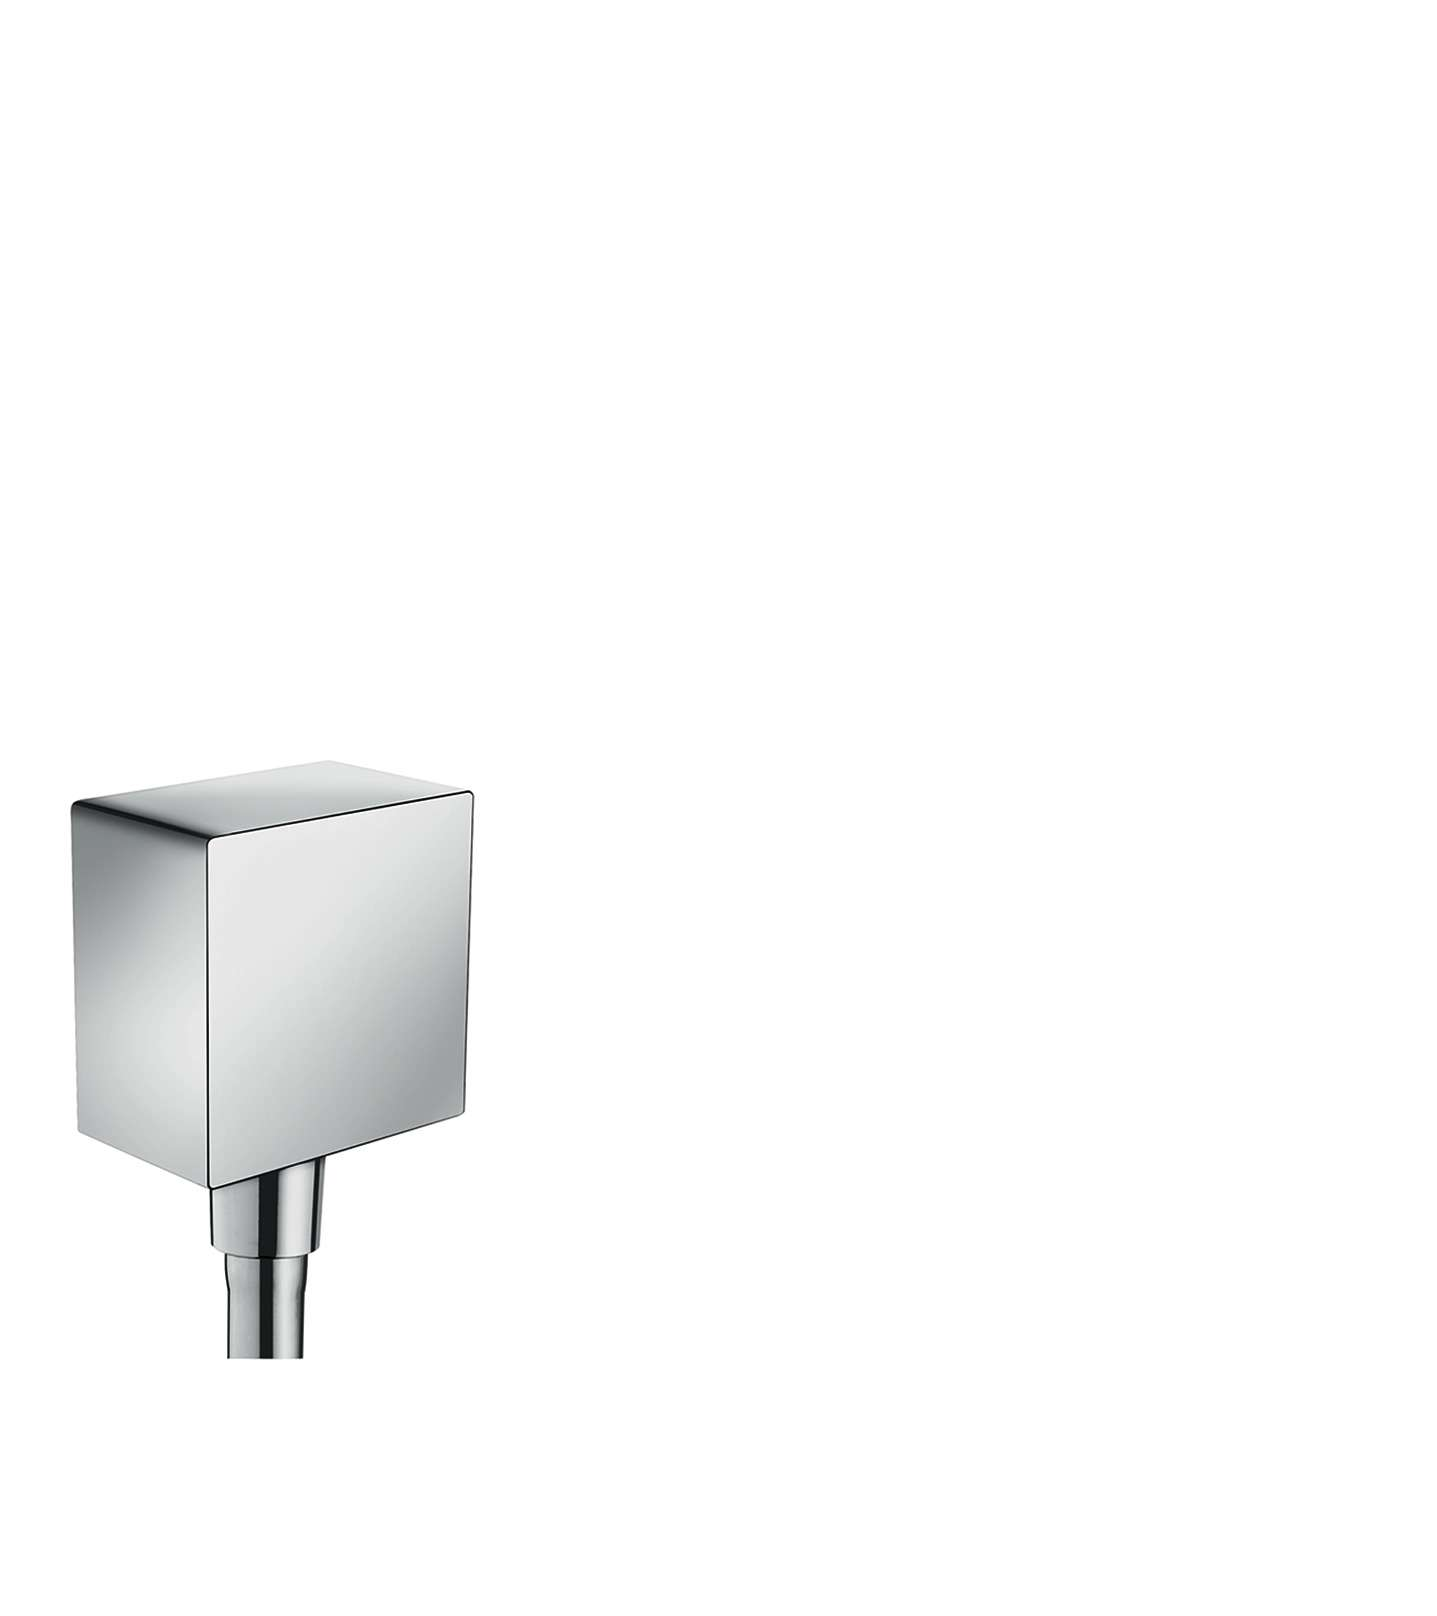 Viega 649982 Hansgrohe Fixfit Square Wall Outlet With Non Return Valve And Synthetic Joint